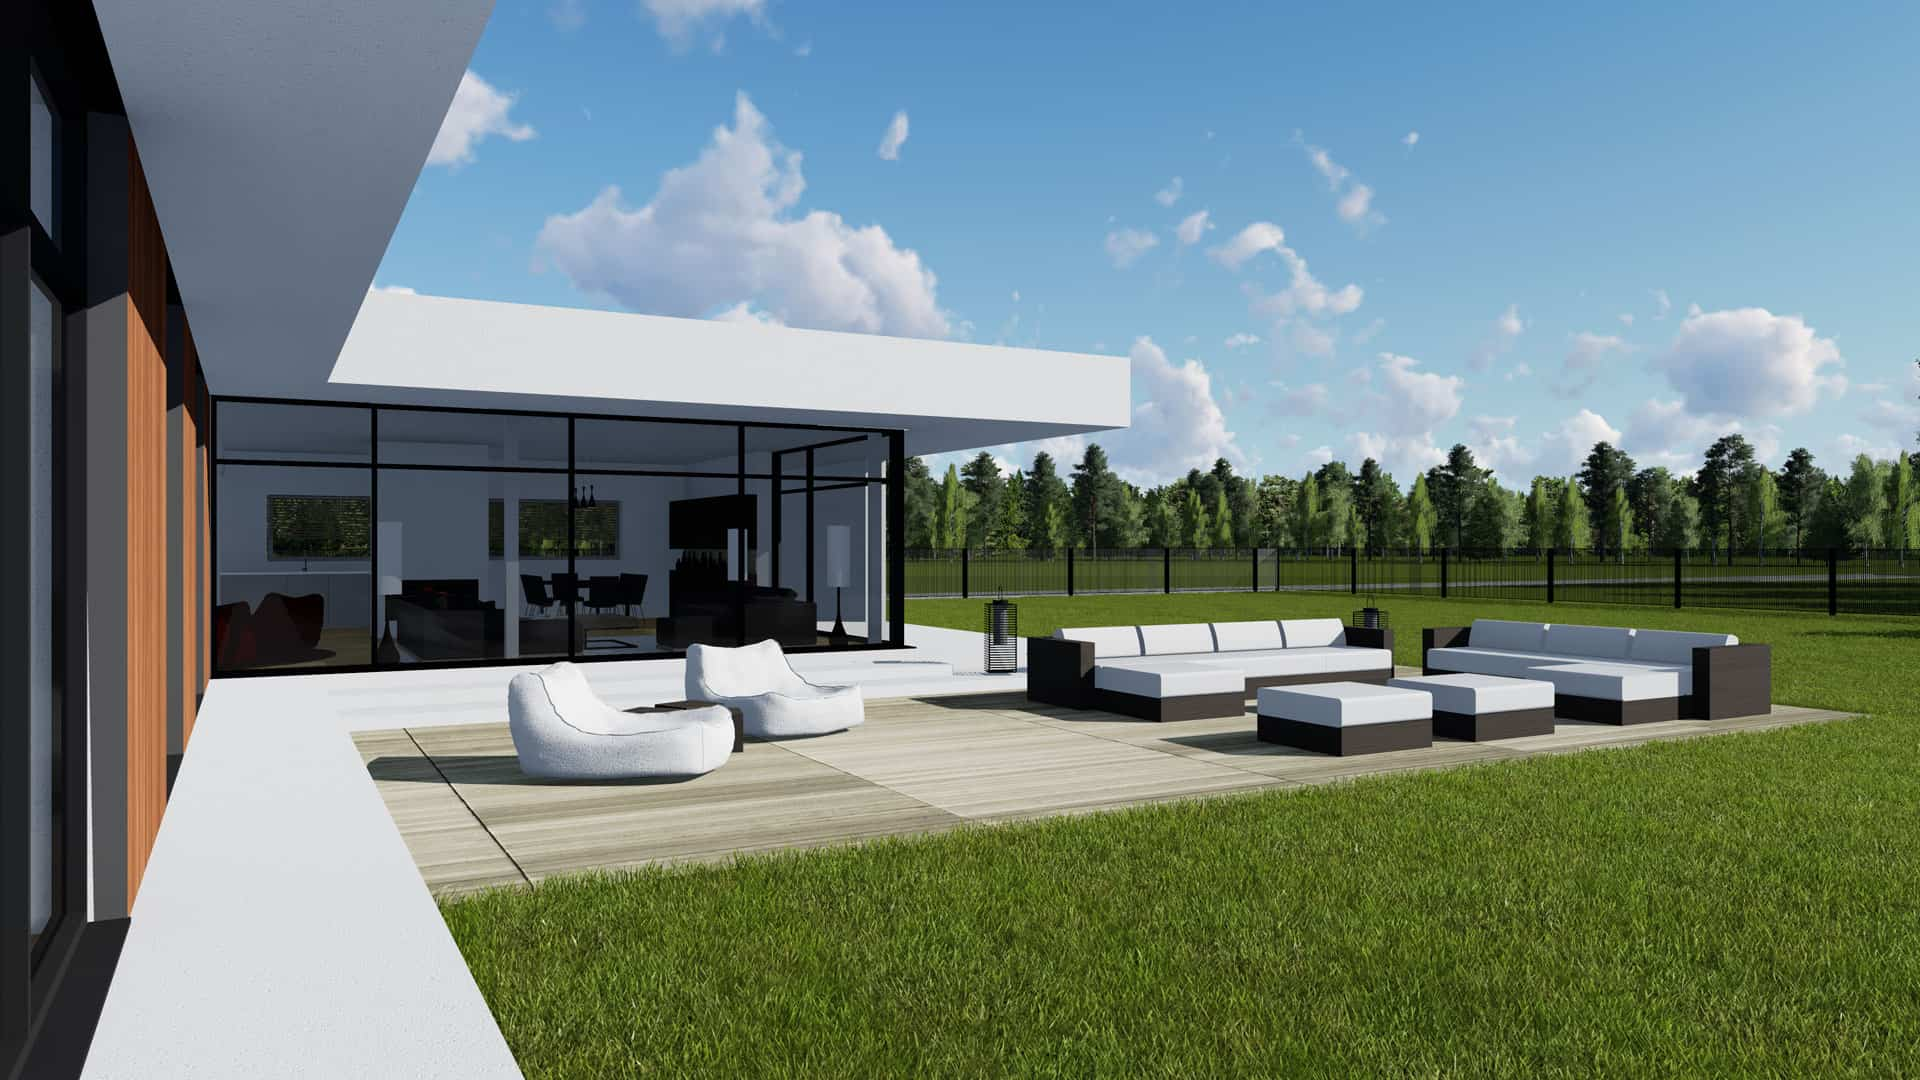 Modern Unexpected Concrete Flat Roof House Plans. Nice barbecue zone for the summer villa